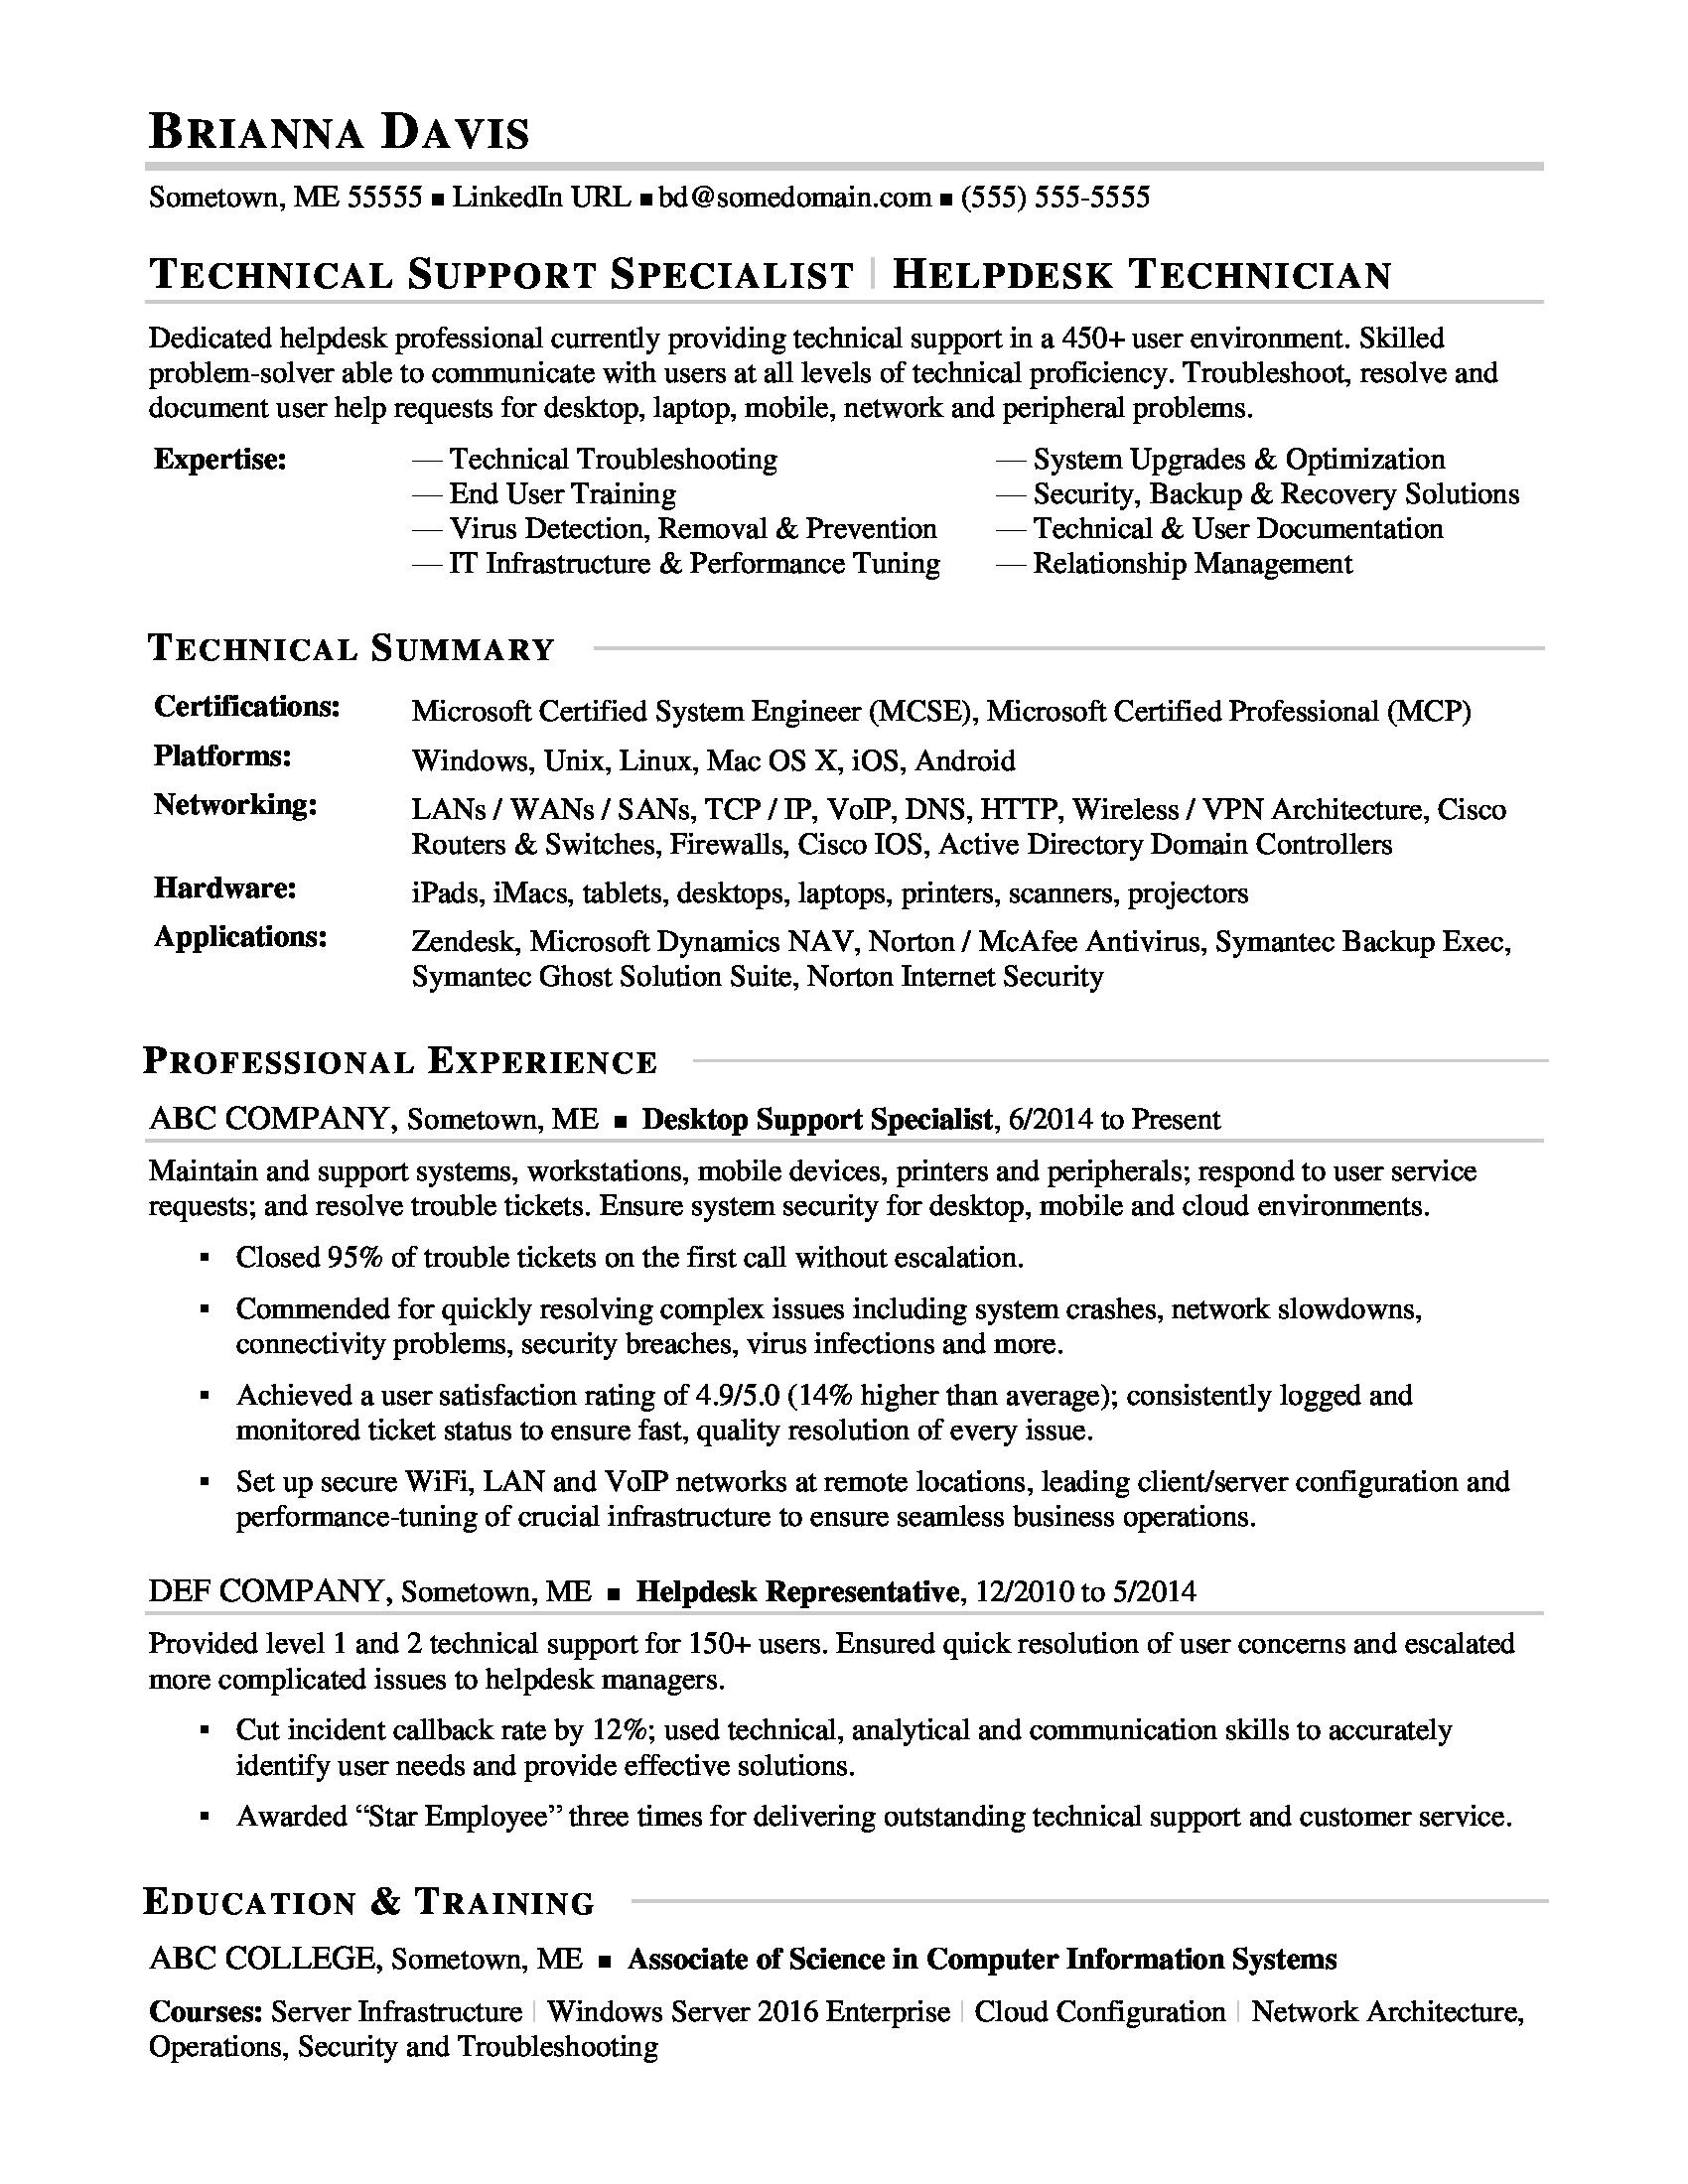 resume help desk support